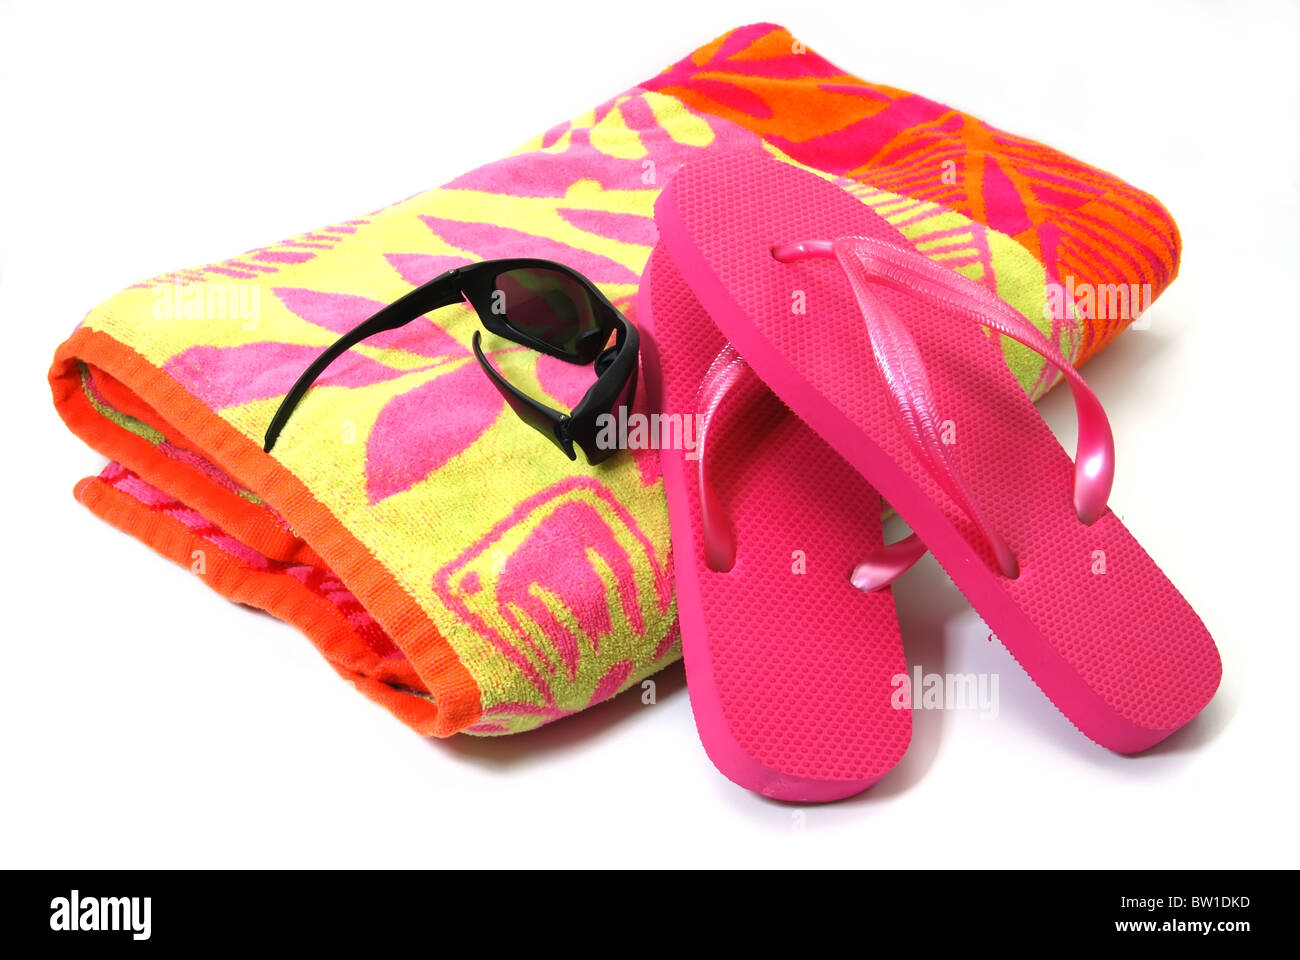 a238b988e7610d Flip Flops And Beach Towel Isolated Stock Photos   Flip Flops And ...